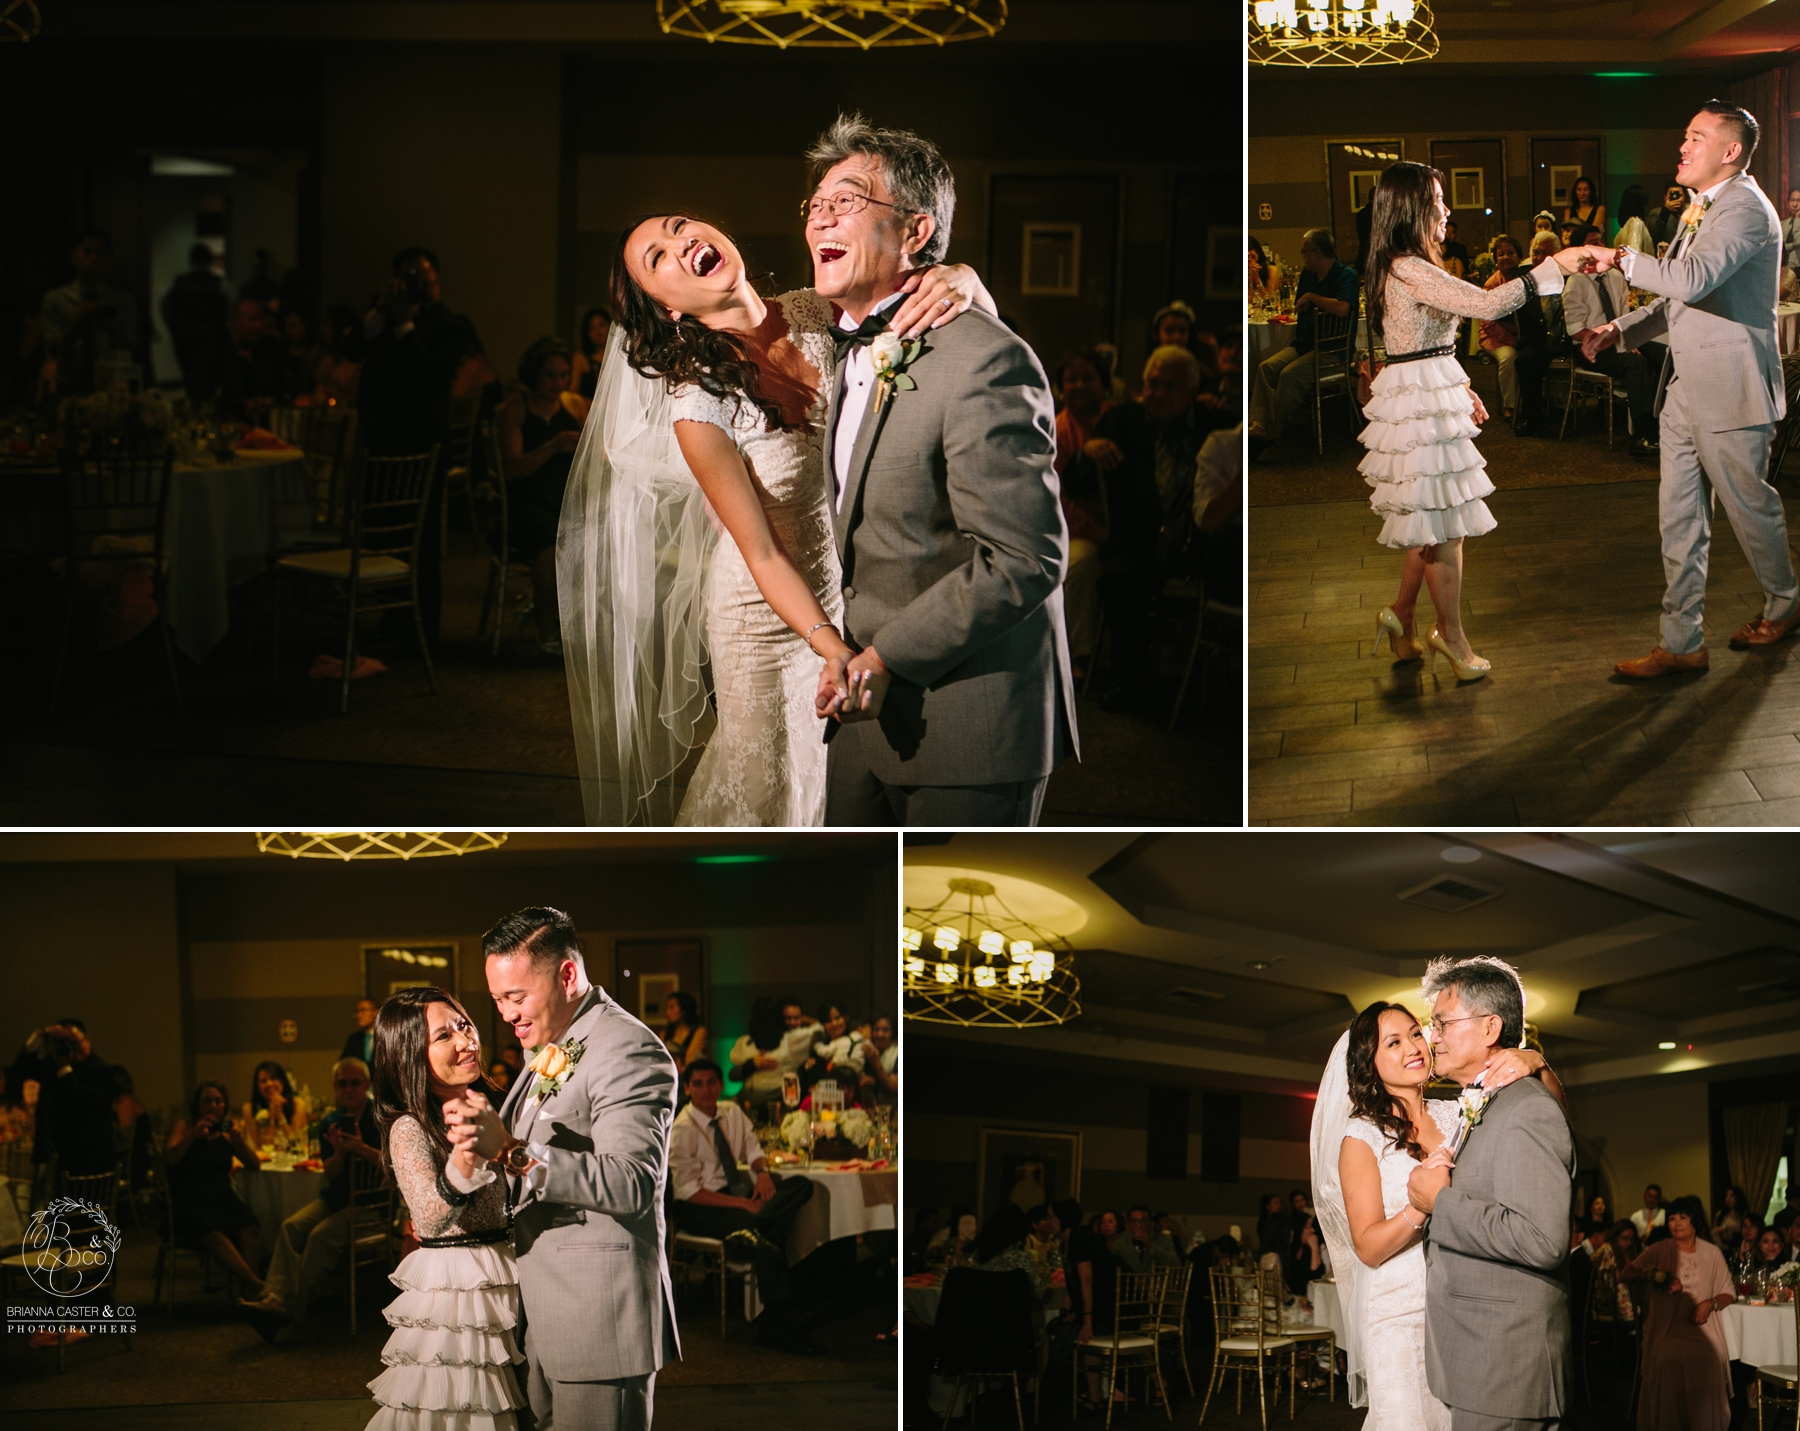 Orange-County-Wedding-Photography-Brianna-Caster-and-Co-Photographers 7